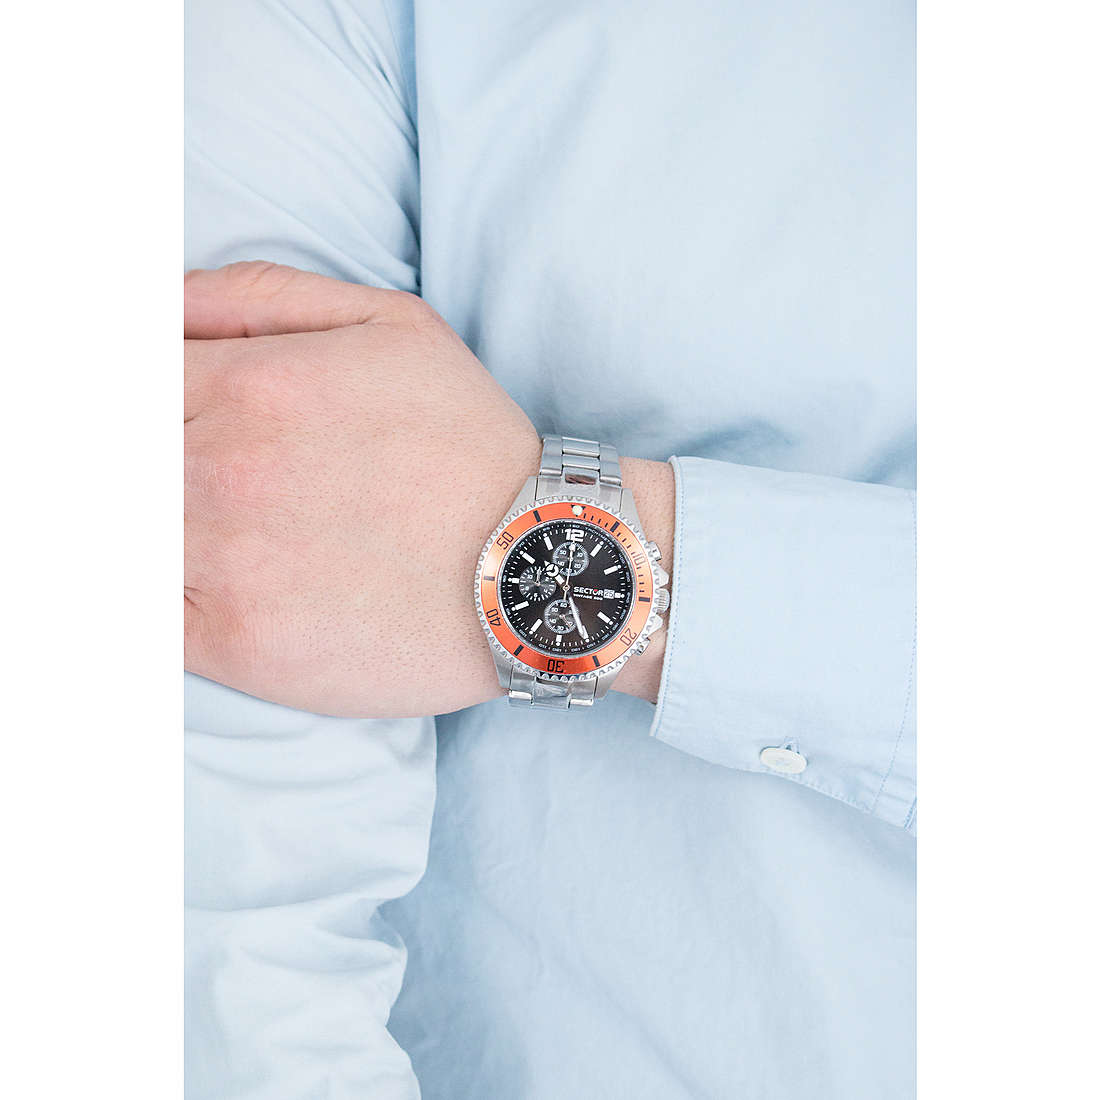 Sector chronographes Marine230 homme R3273661001 photo wearing